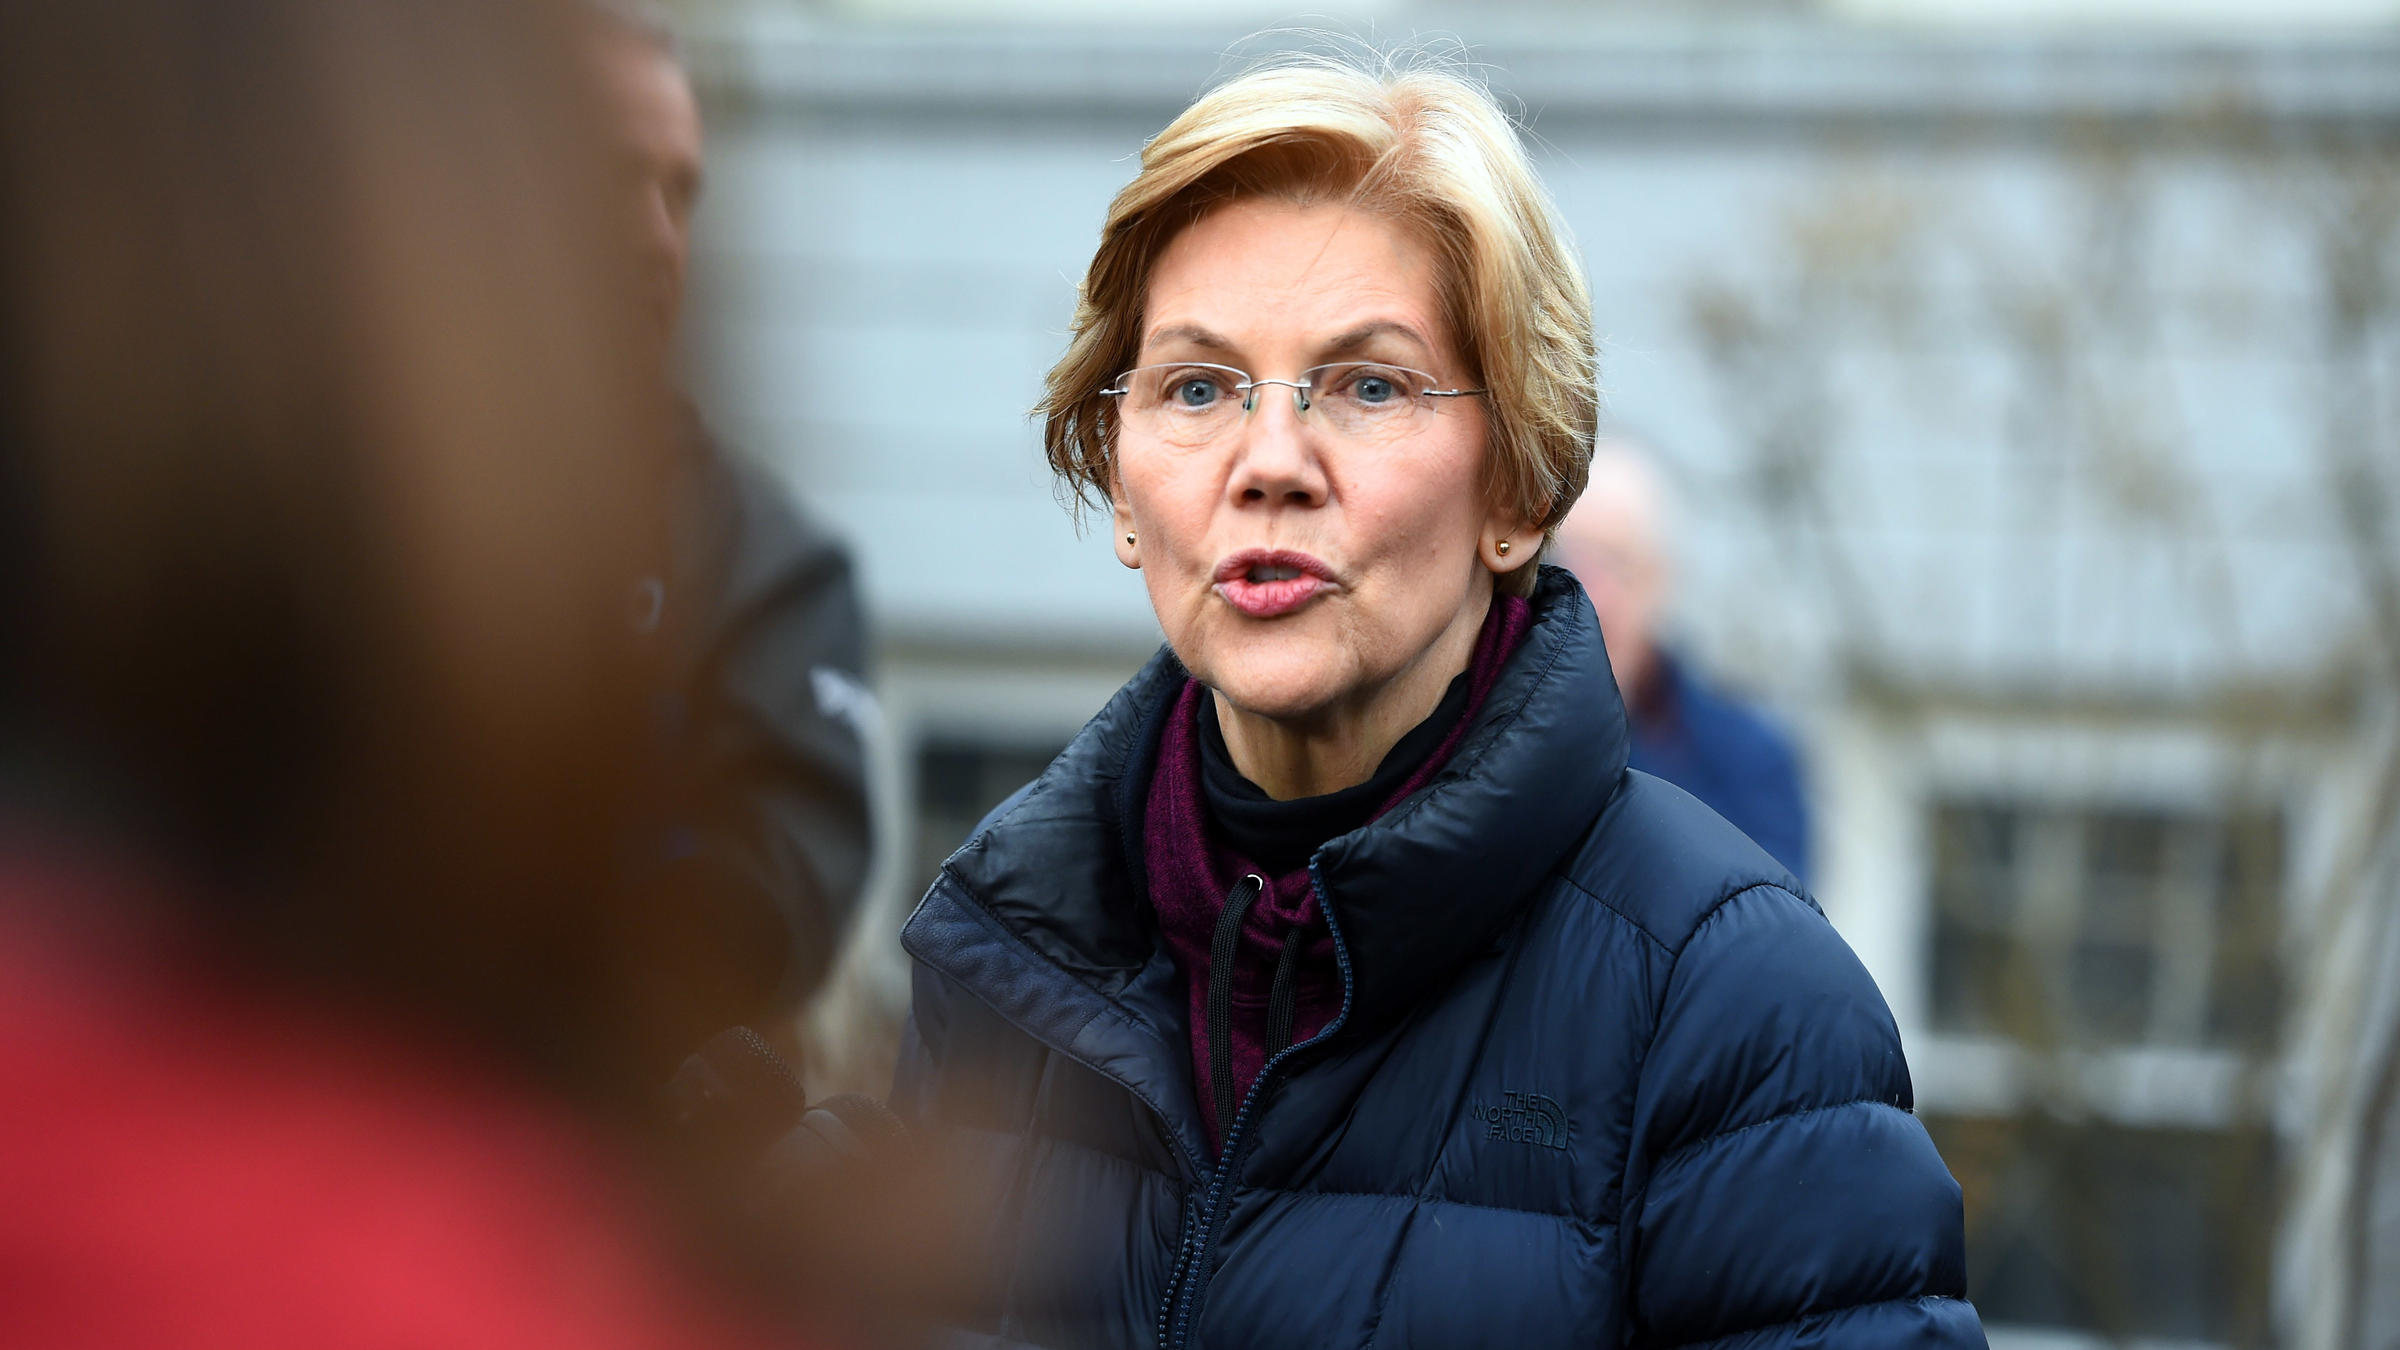 Massachusetts Sen. Elizabeth Warren speaks to reporters outside her home in Cambridge Mass. on Dec. 31 after announcing plans to explore a campaign for the 2020 Democratic presidential nomination